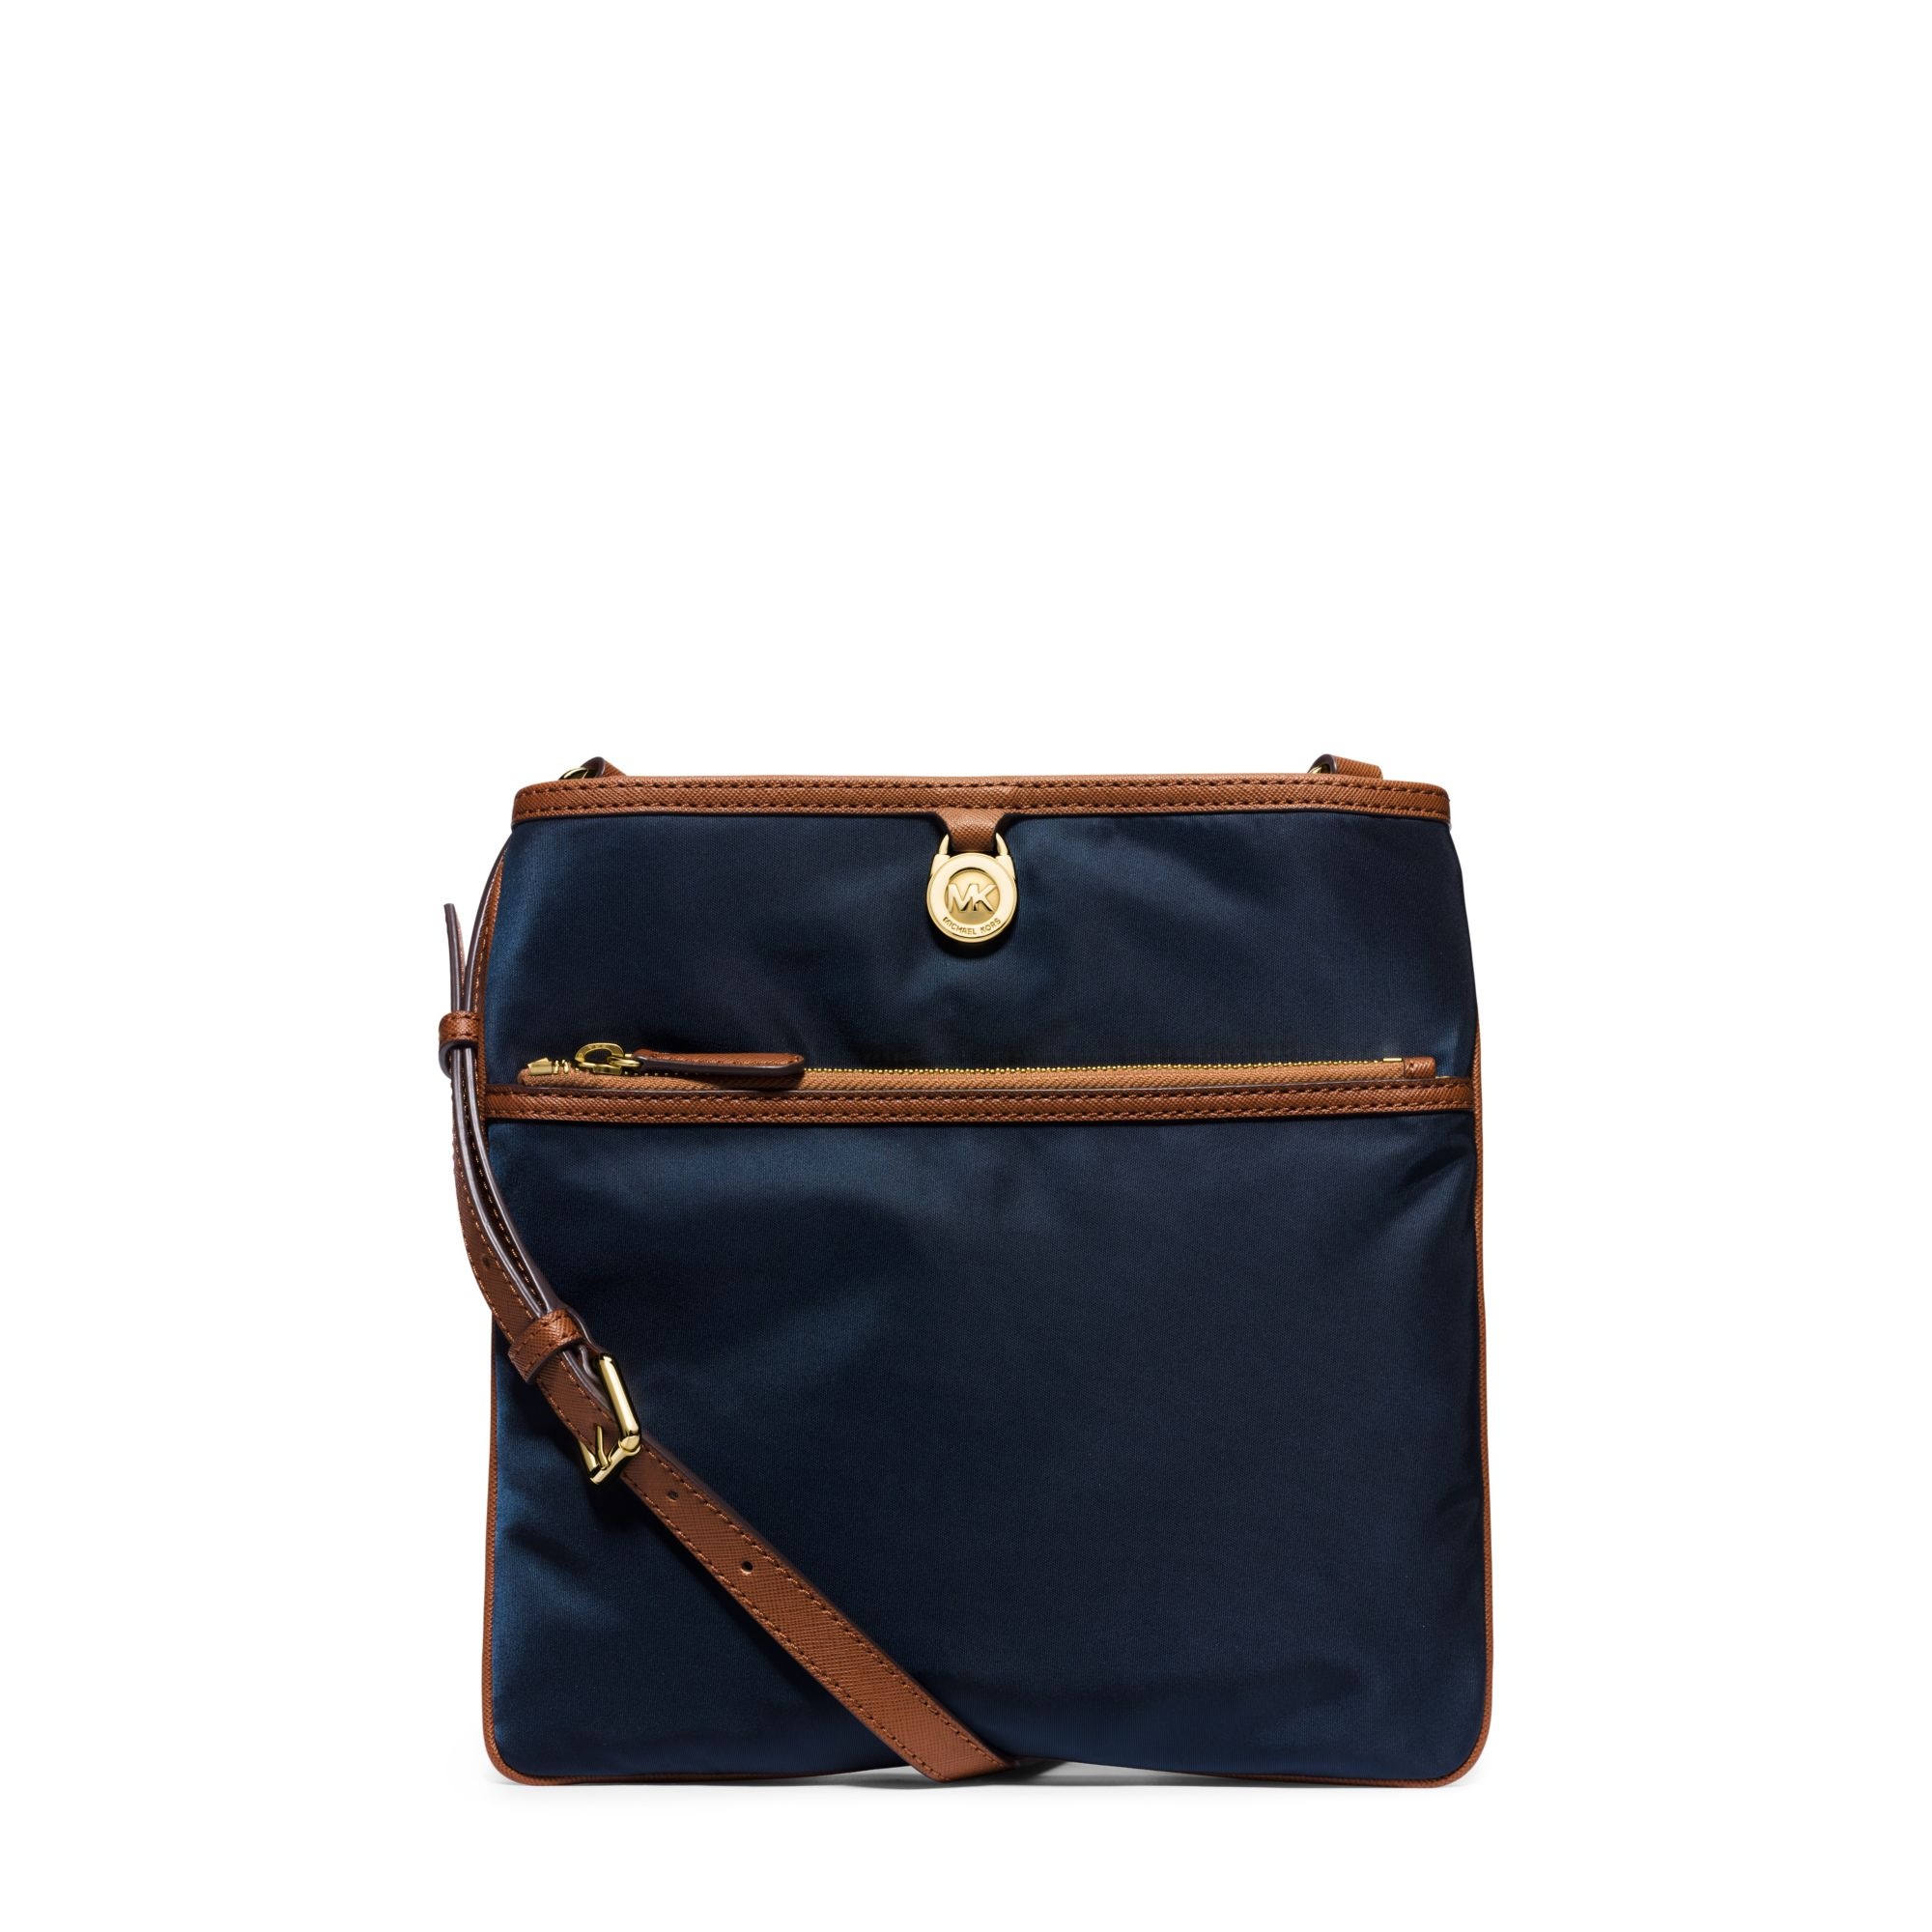 cbfe659b5a86f8 Michael Kors Kempton Large Nylon Crossbody in Blue - Lyst